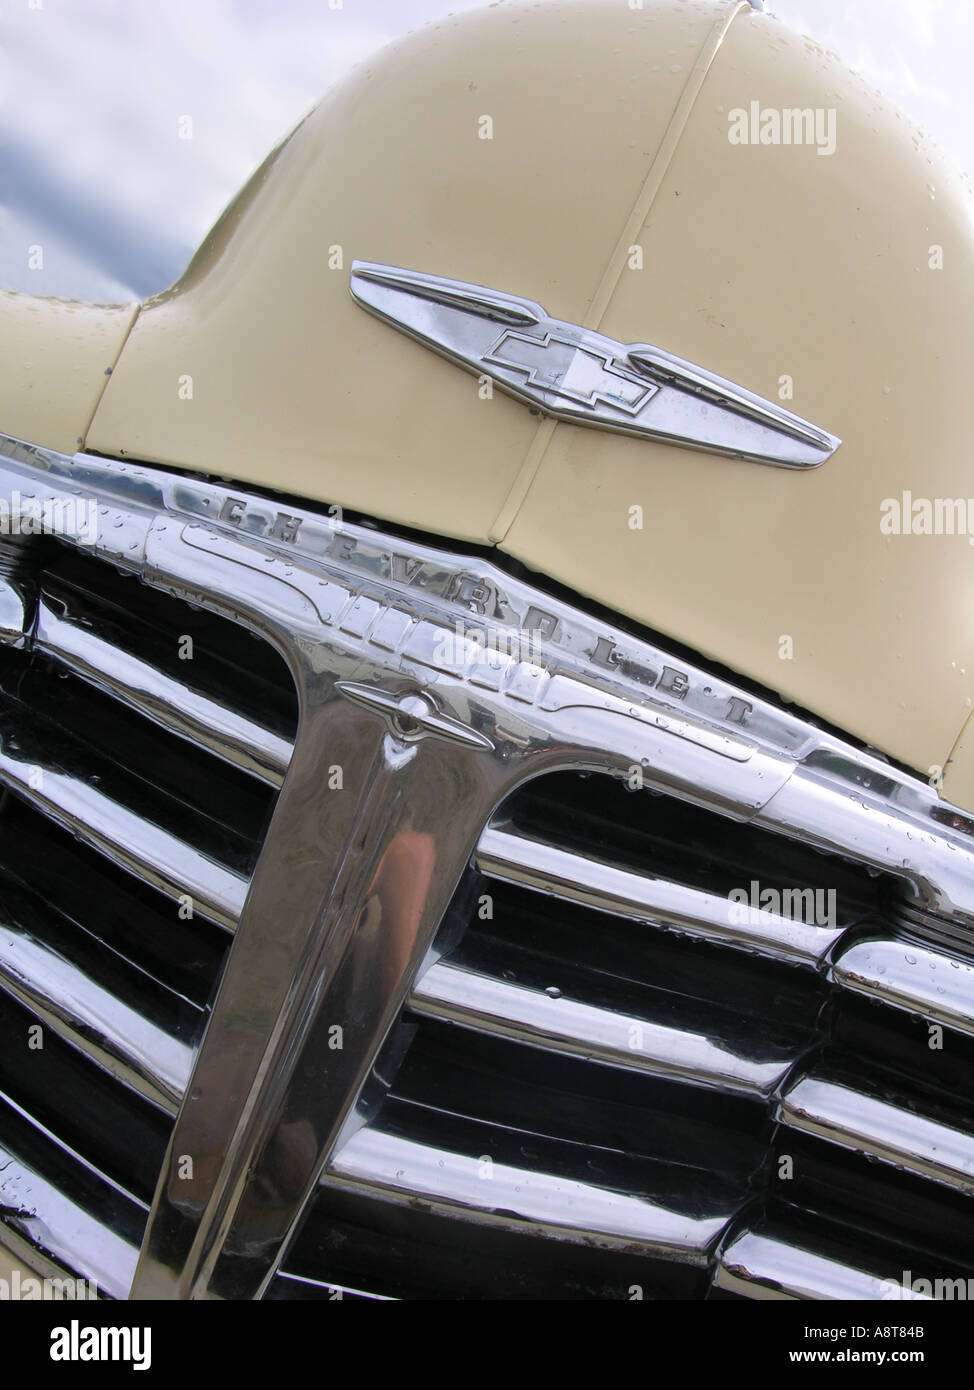 Grille of antique Chevrolet vintage collector s car Small water droplets from recent rain on parts of chrome - Stock Image